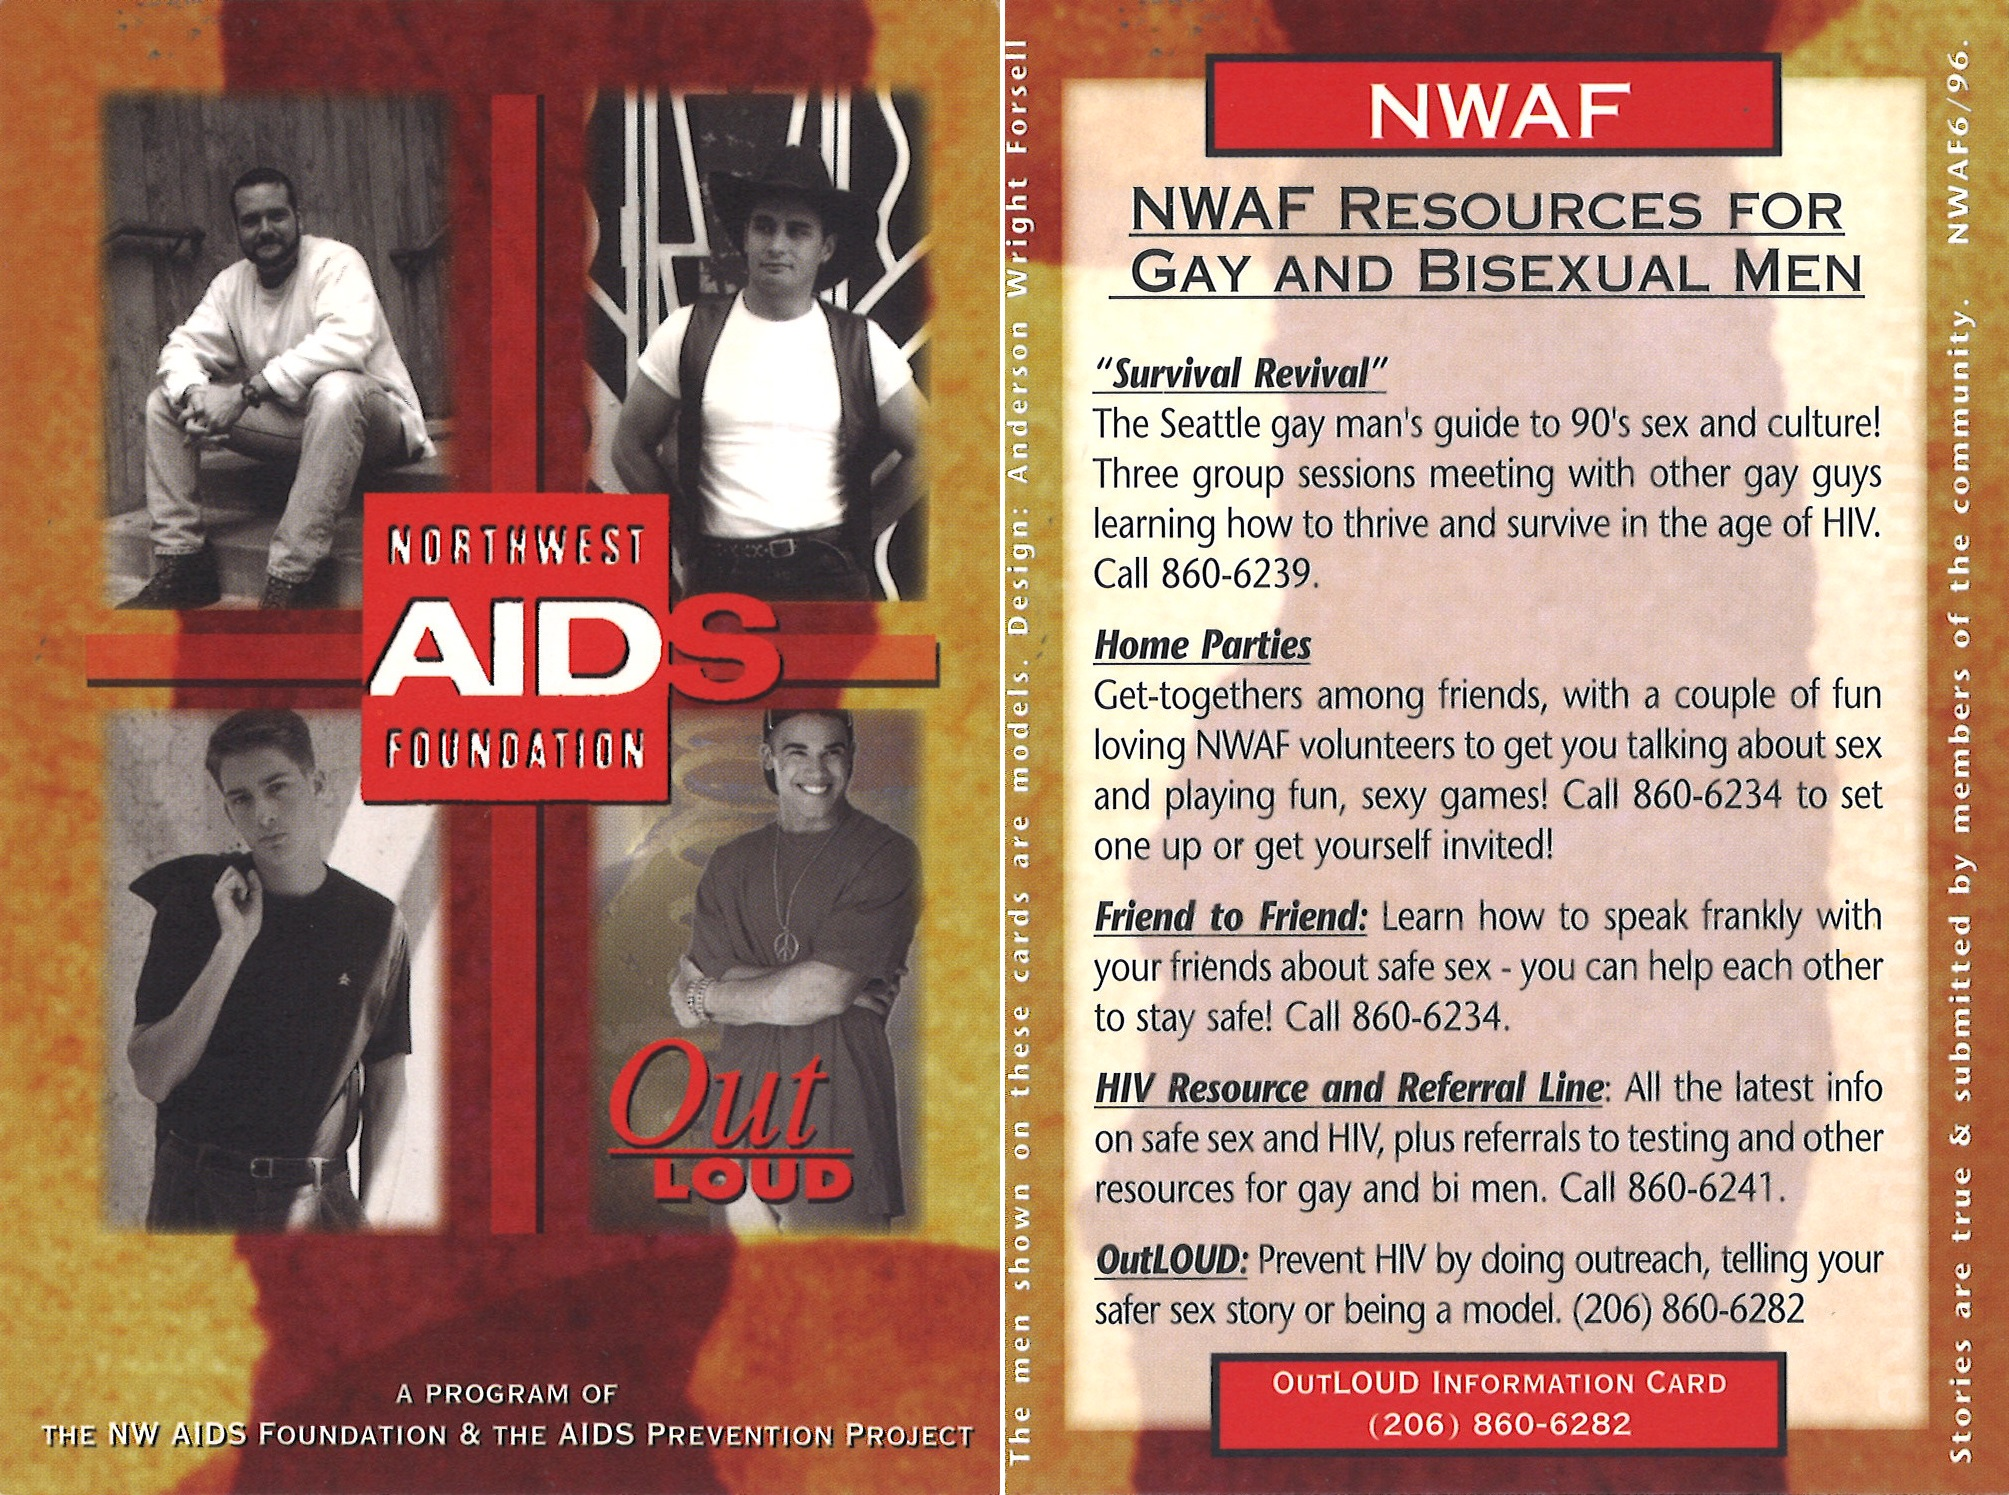 1825-6-15-nw-aids-foundation-info-card